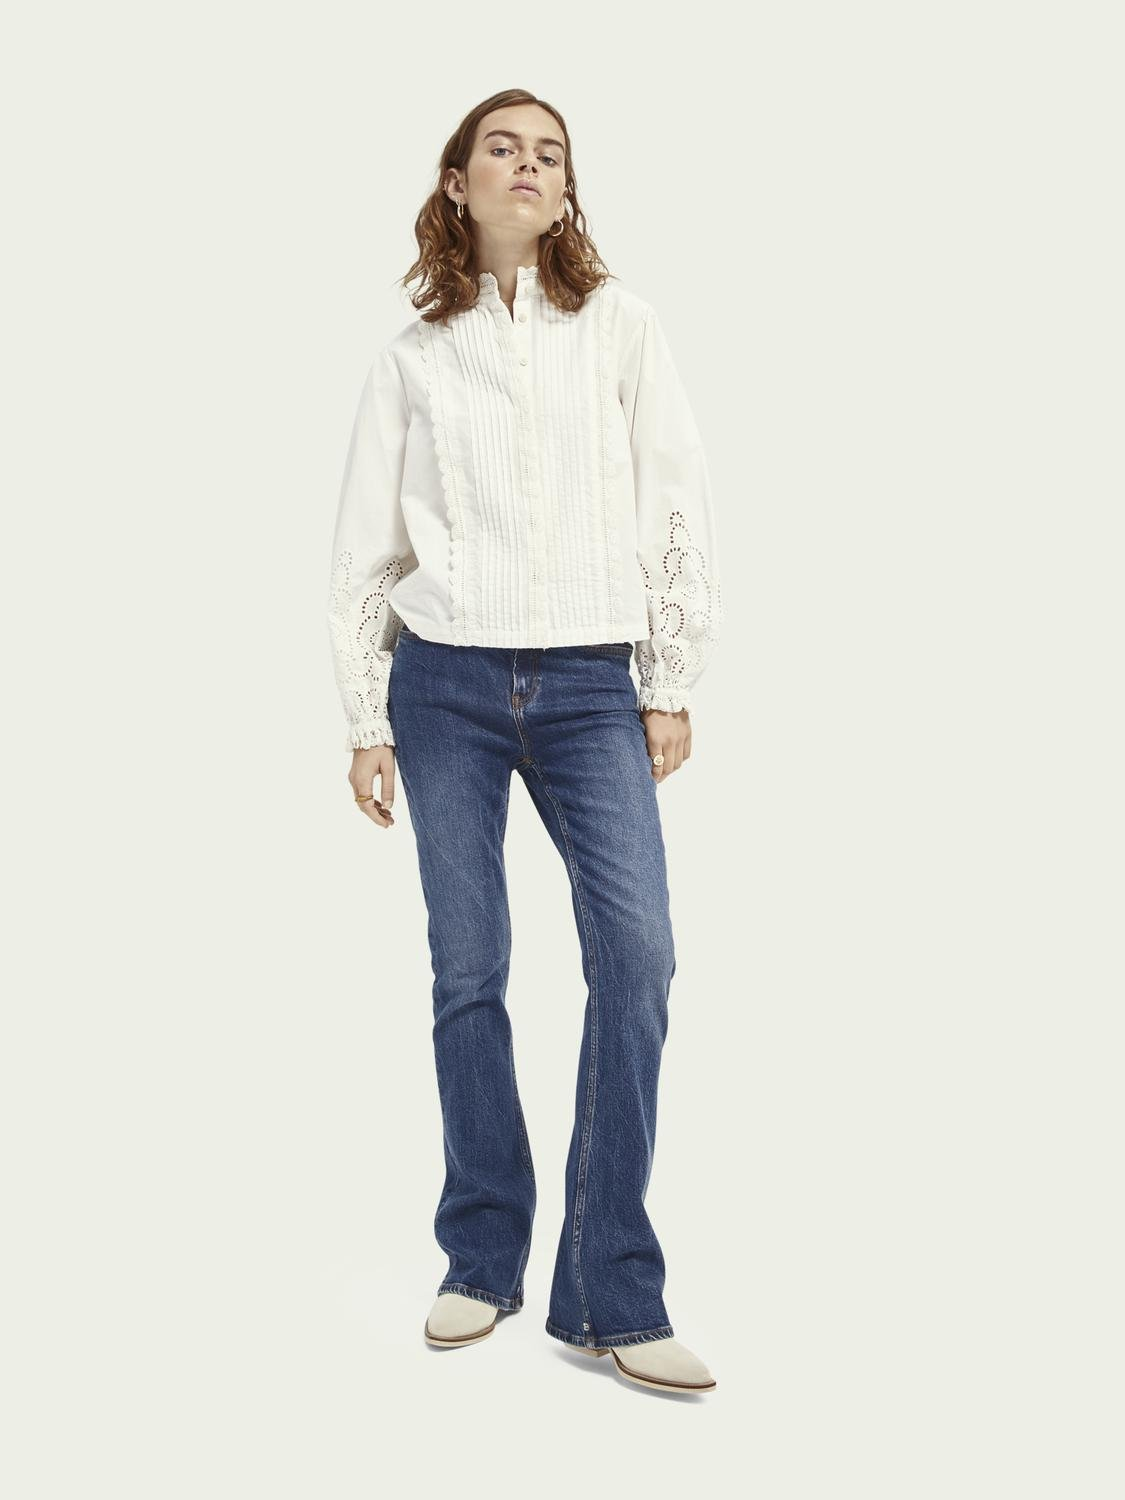 Broderie anglaise detail top 1